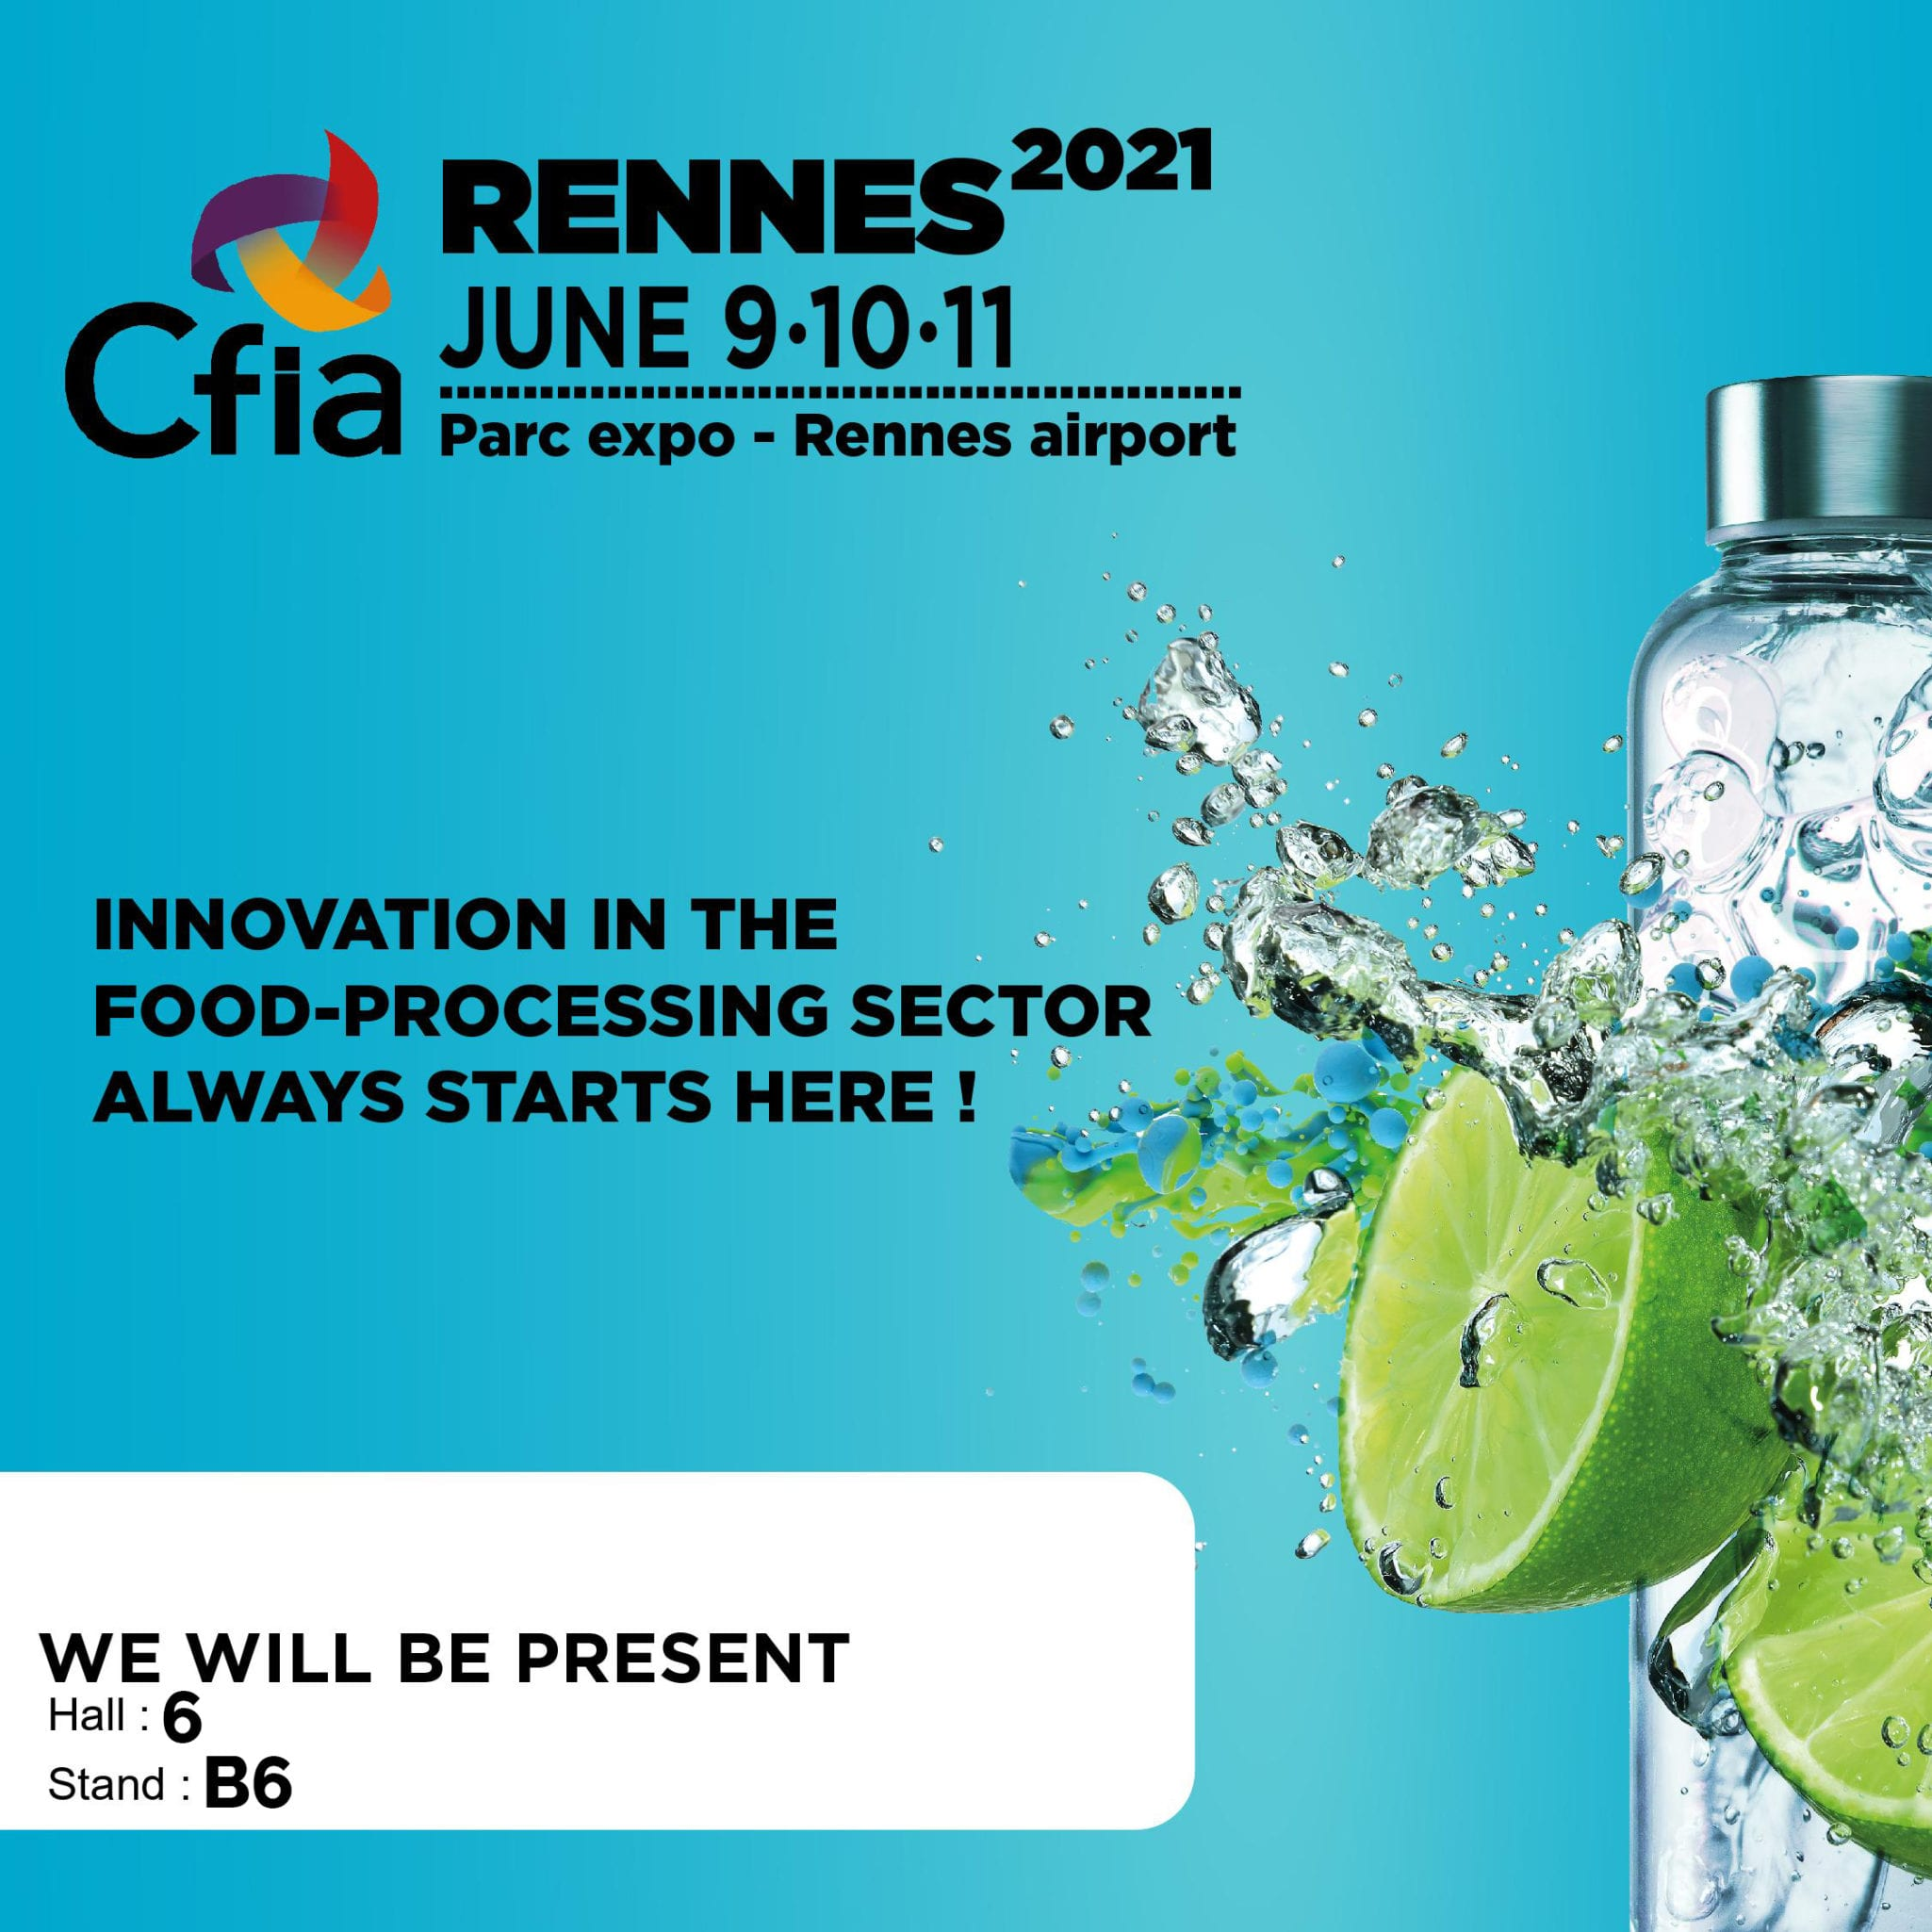 GSE to exhibit at the CFIA trade fair in Rennes – 9 to 11 June